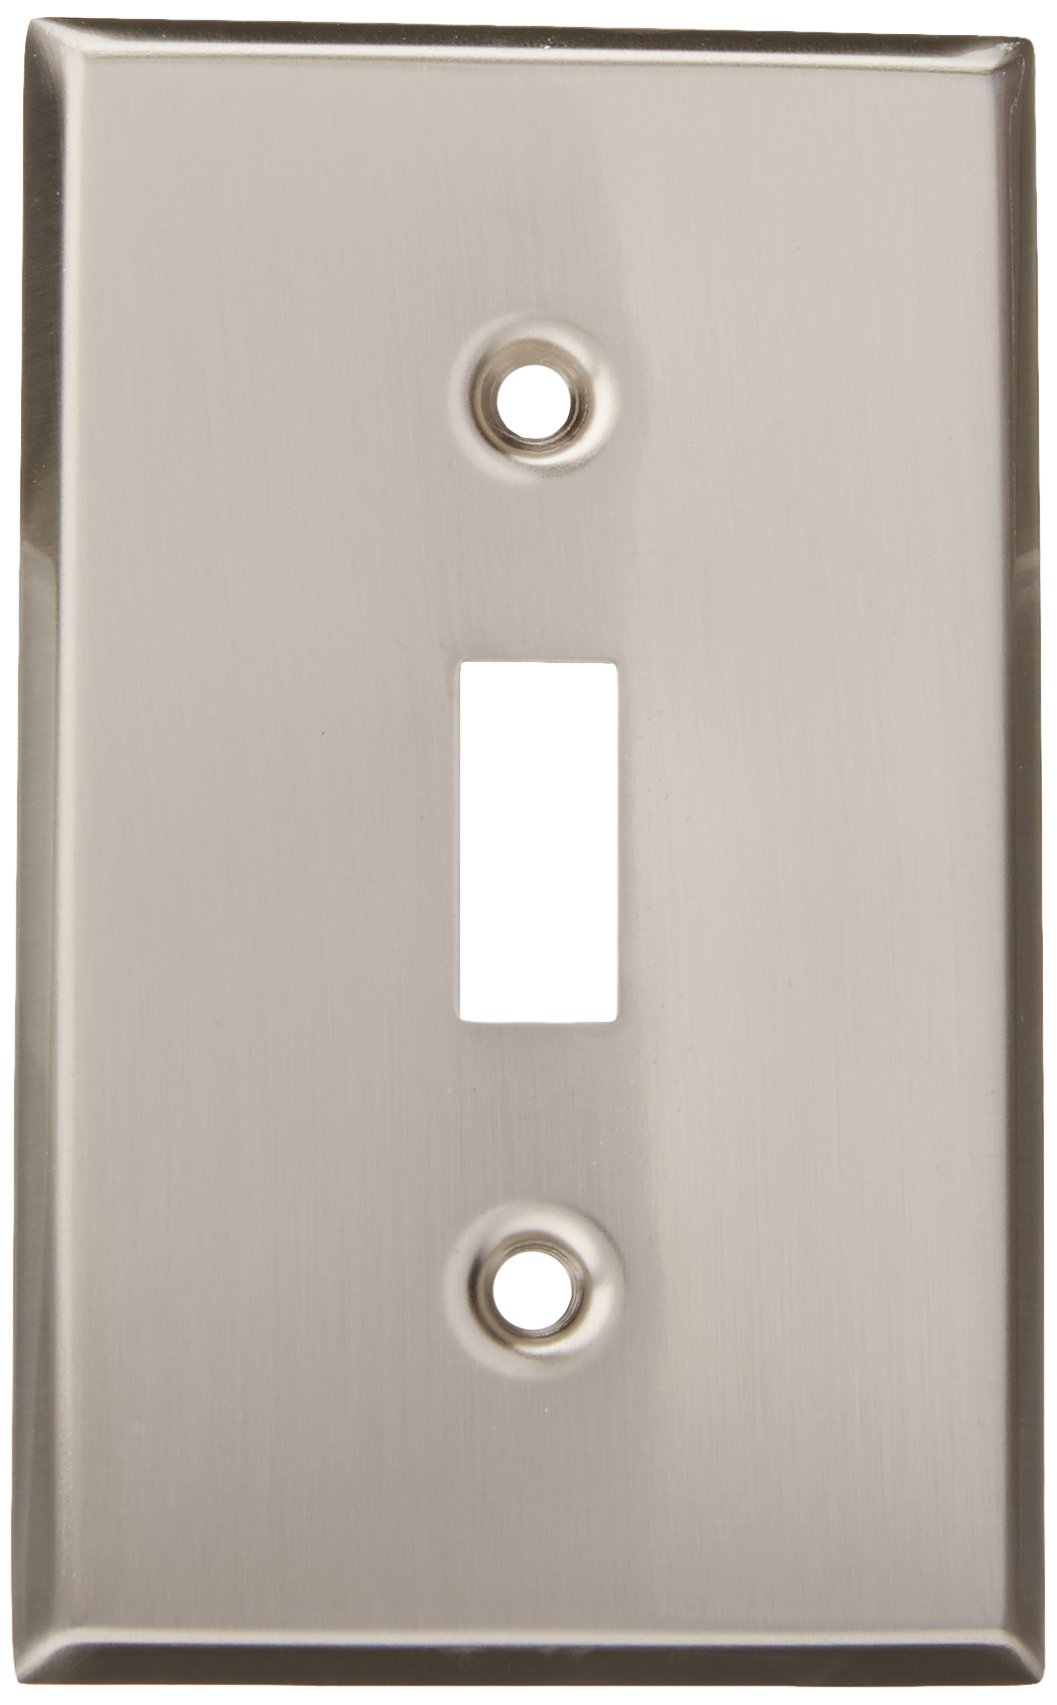 MINTCRAFT 881-07-SOU Switch Plate Single, Brush Nickel